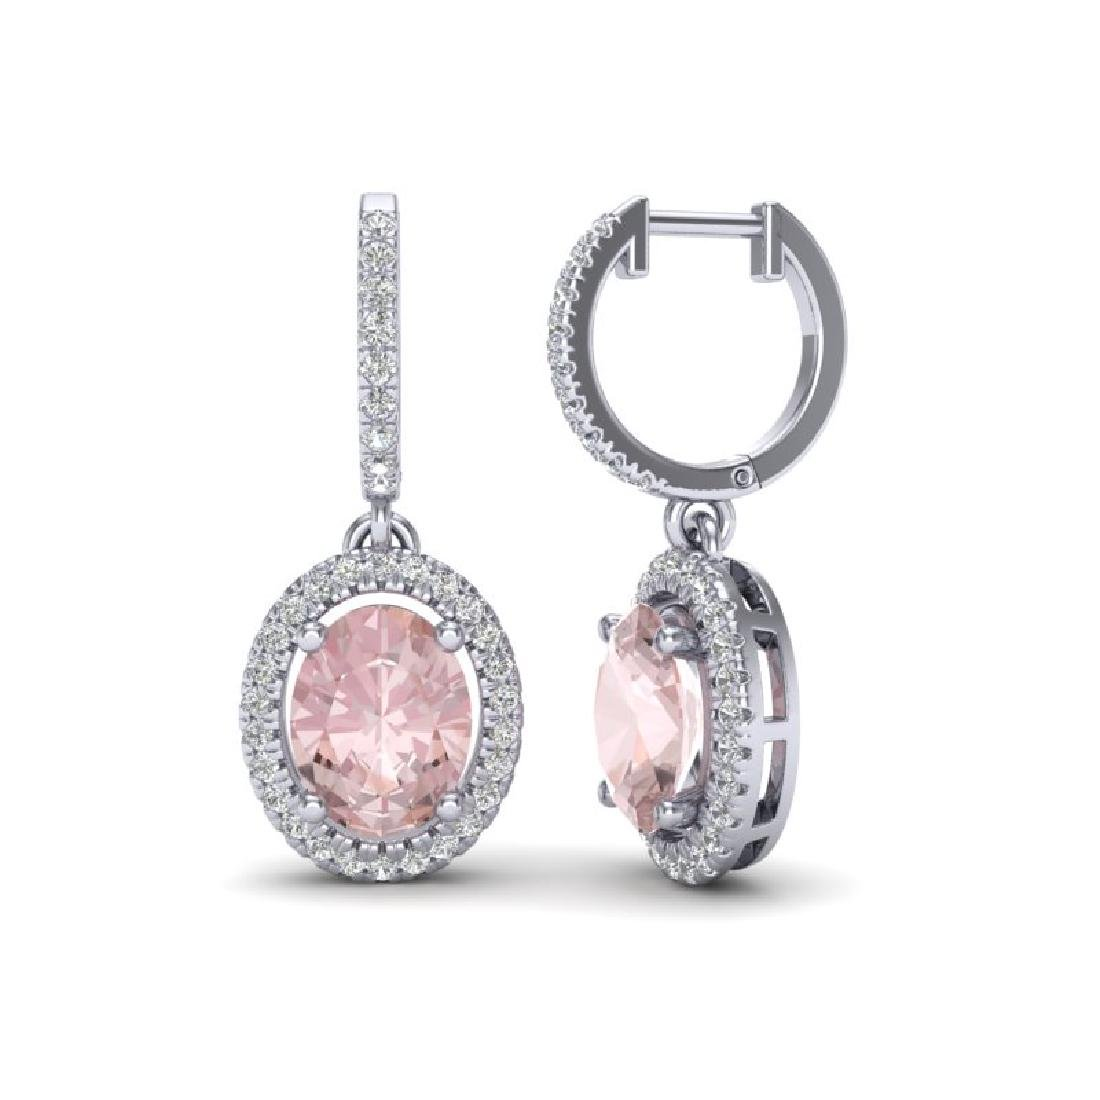 3.25 CTW Morganite & Micro Pave VS/SI Diamond Earrings - 2